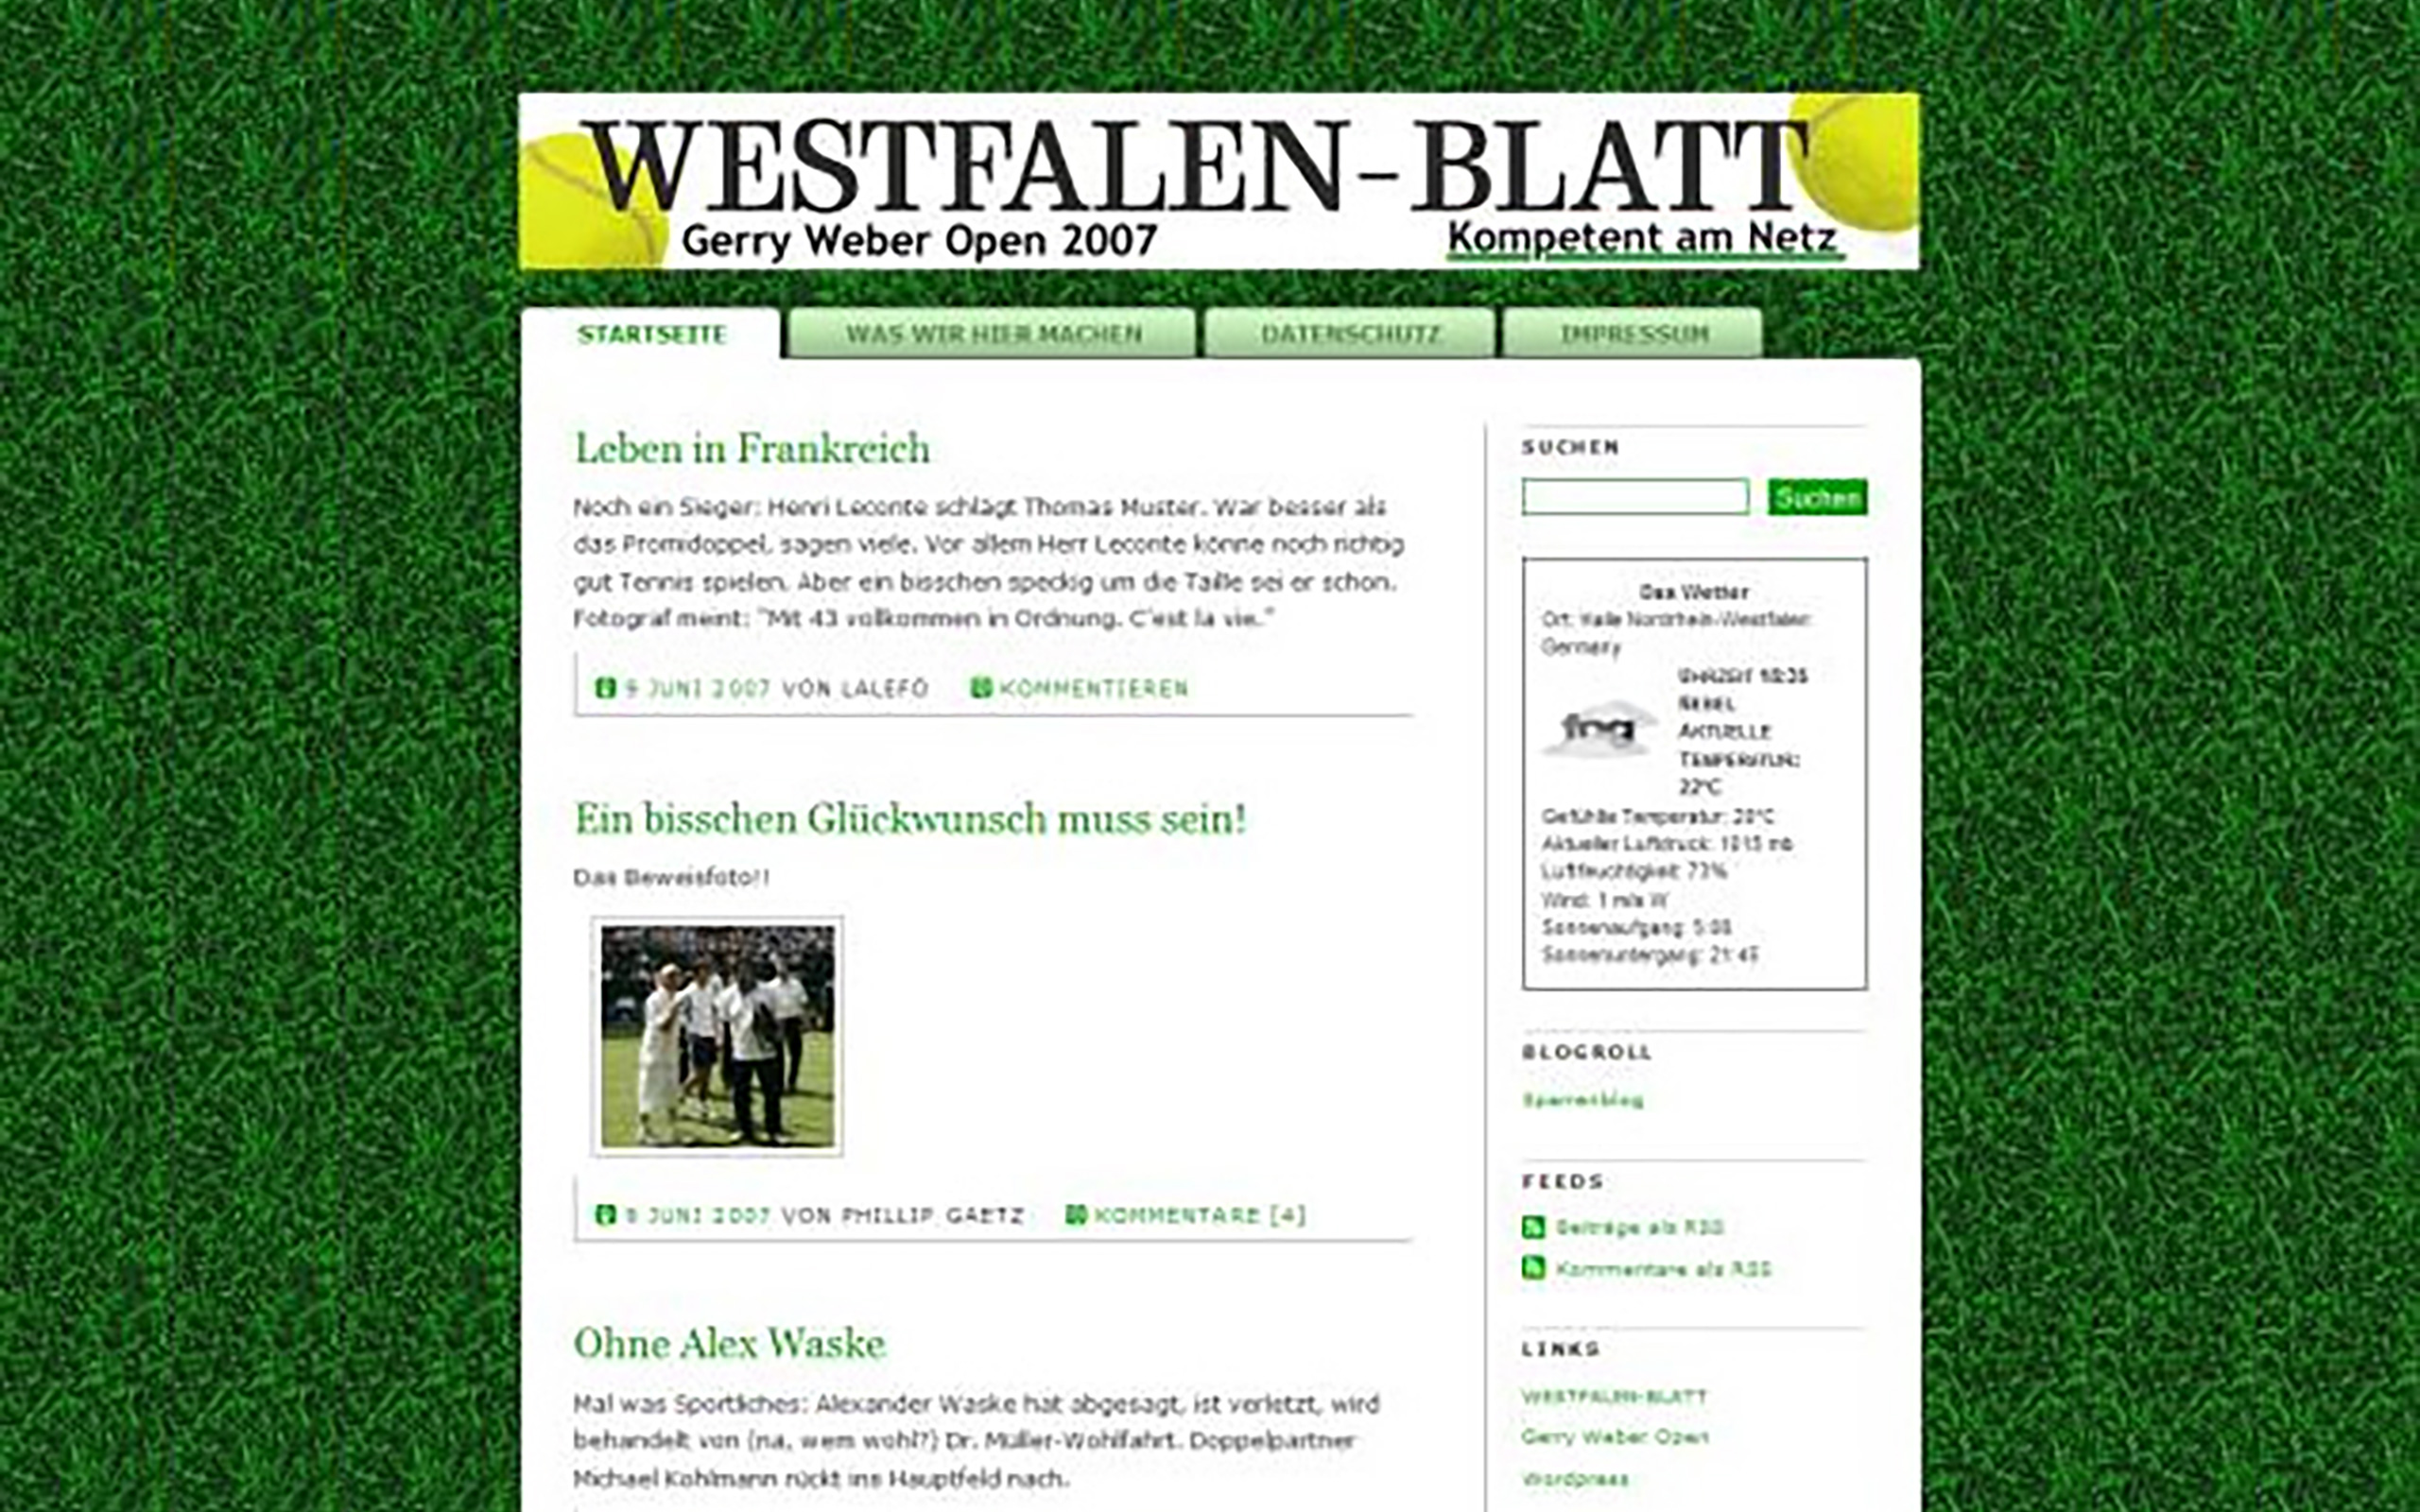 Westfalen-Blatt Gerry Weber Open